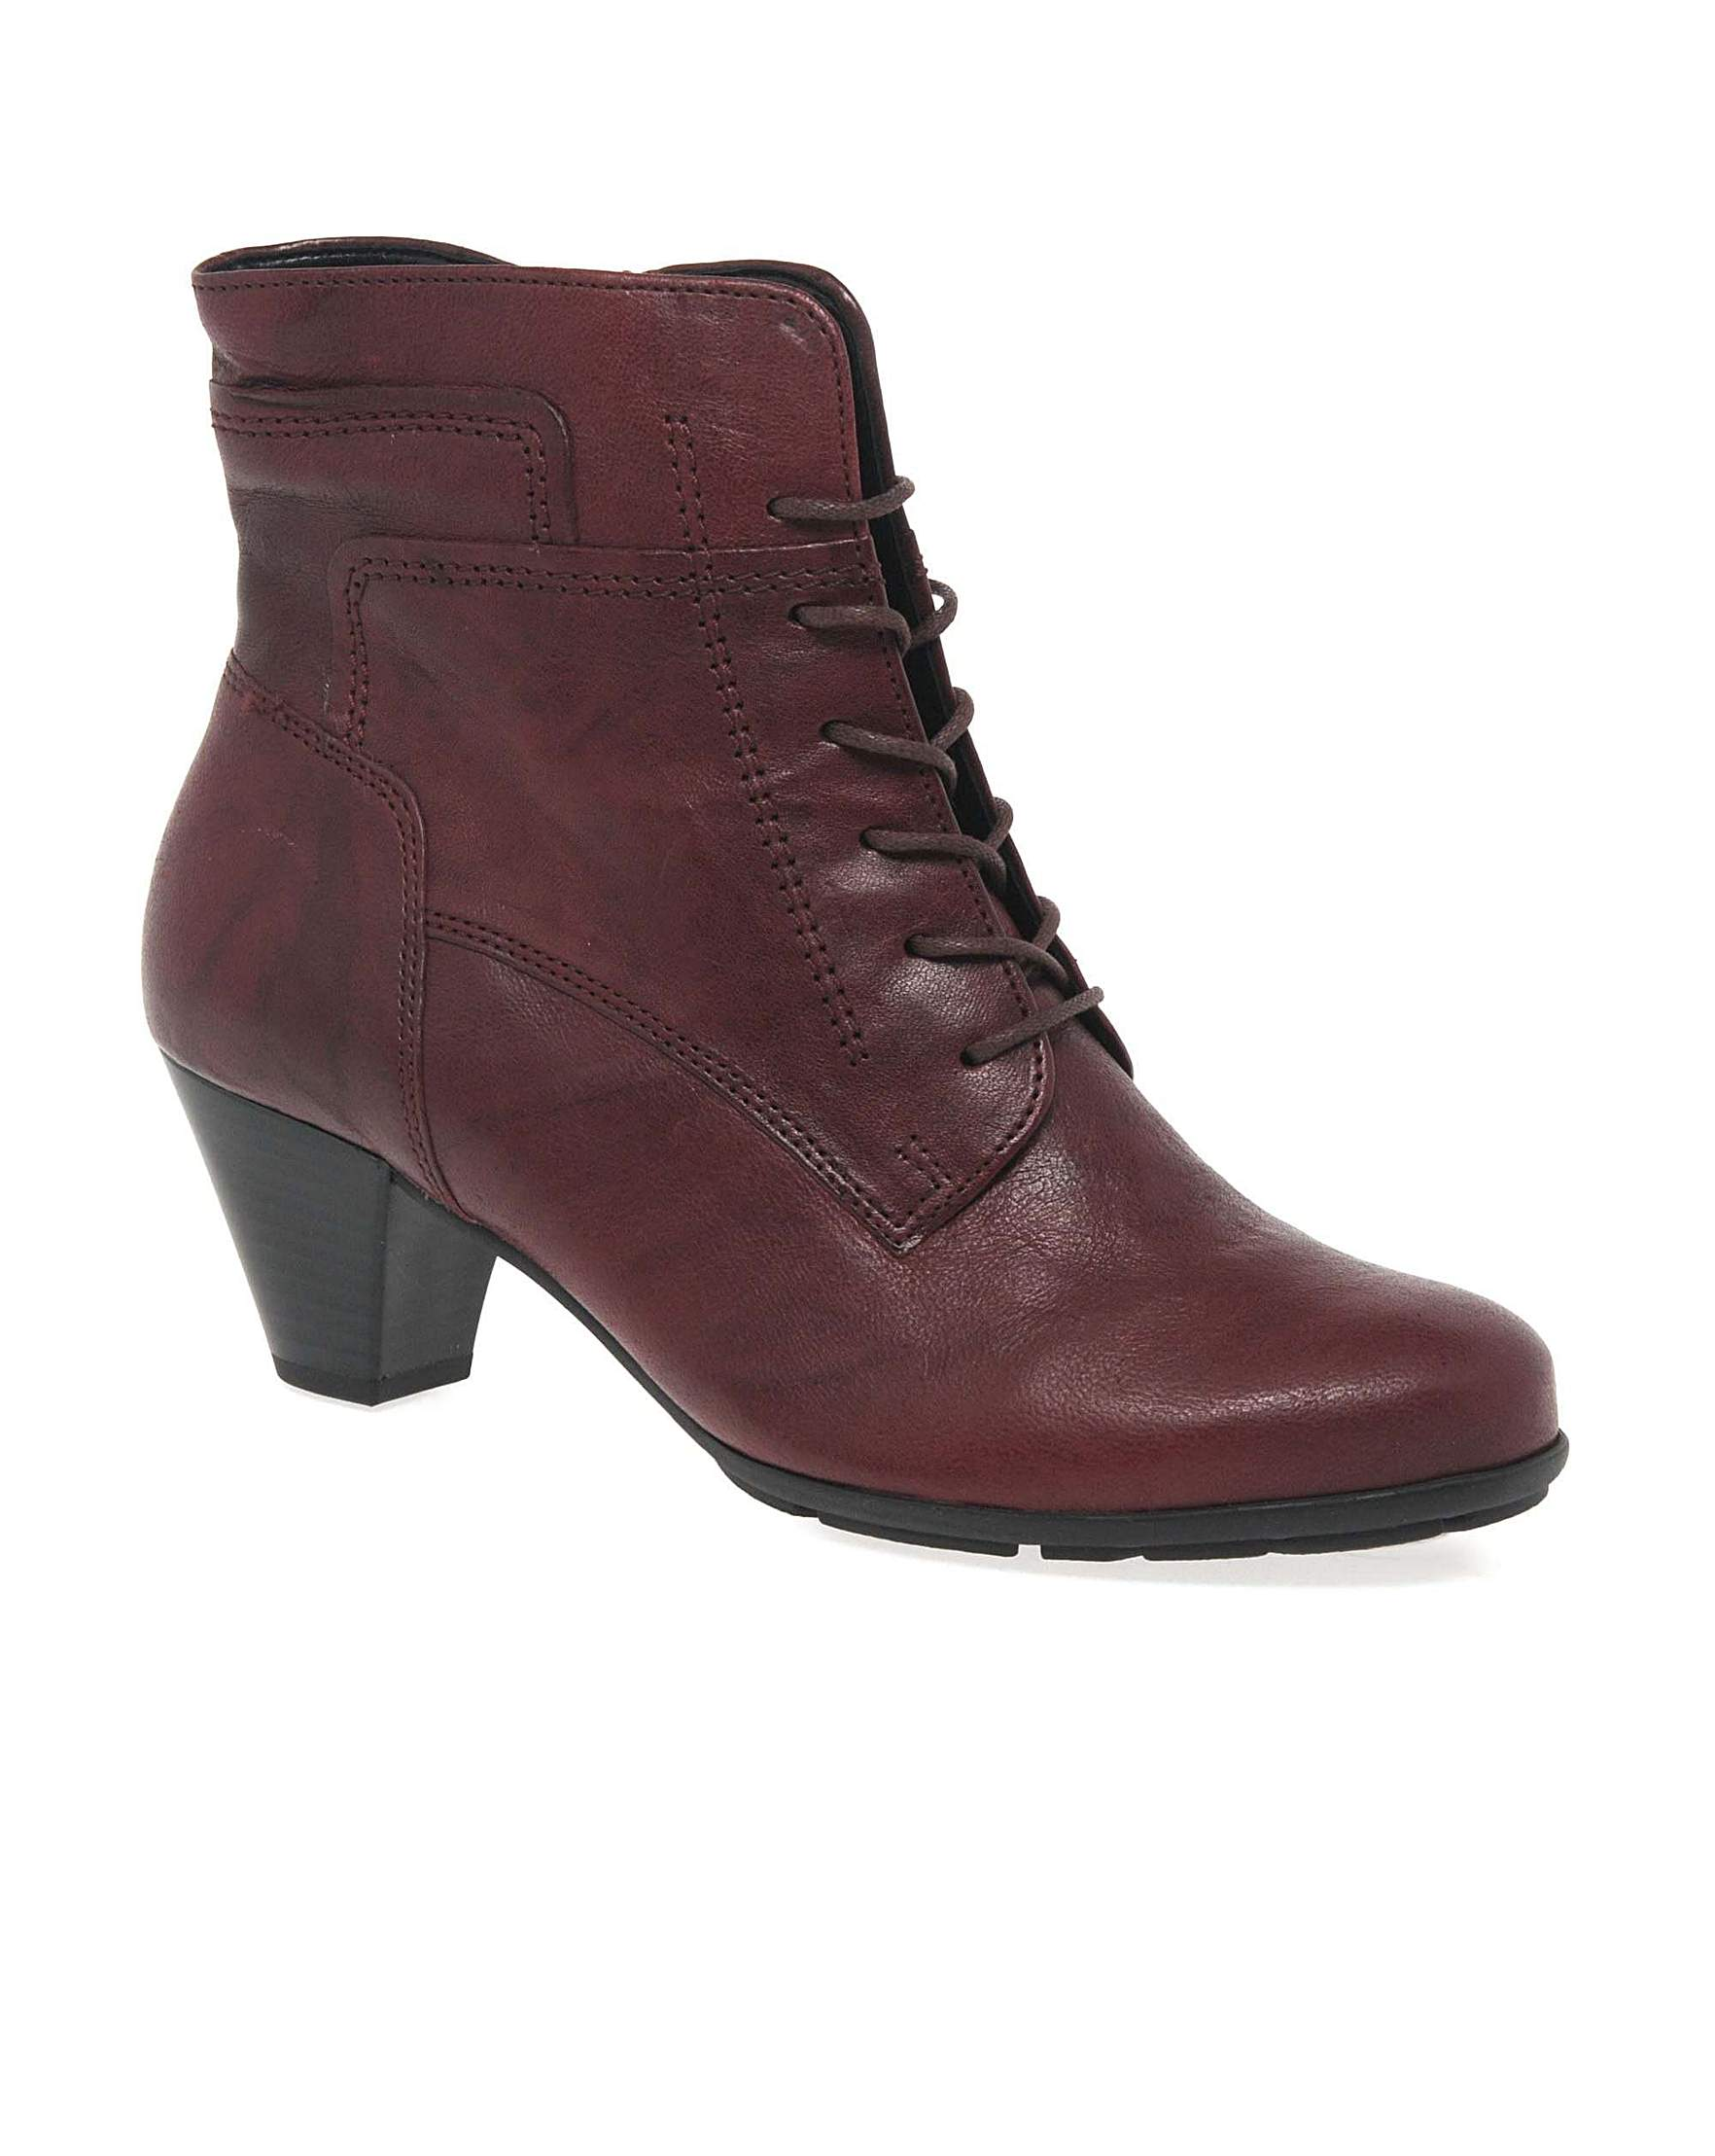 74493ca19f1 Gabor National Womens Ankle Boots